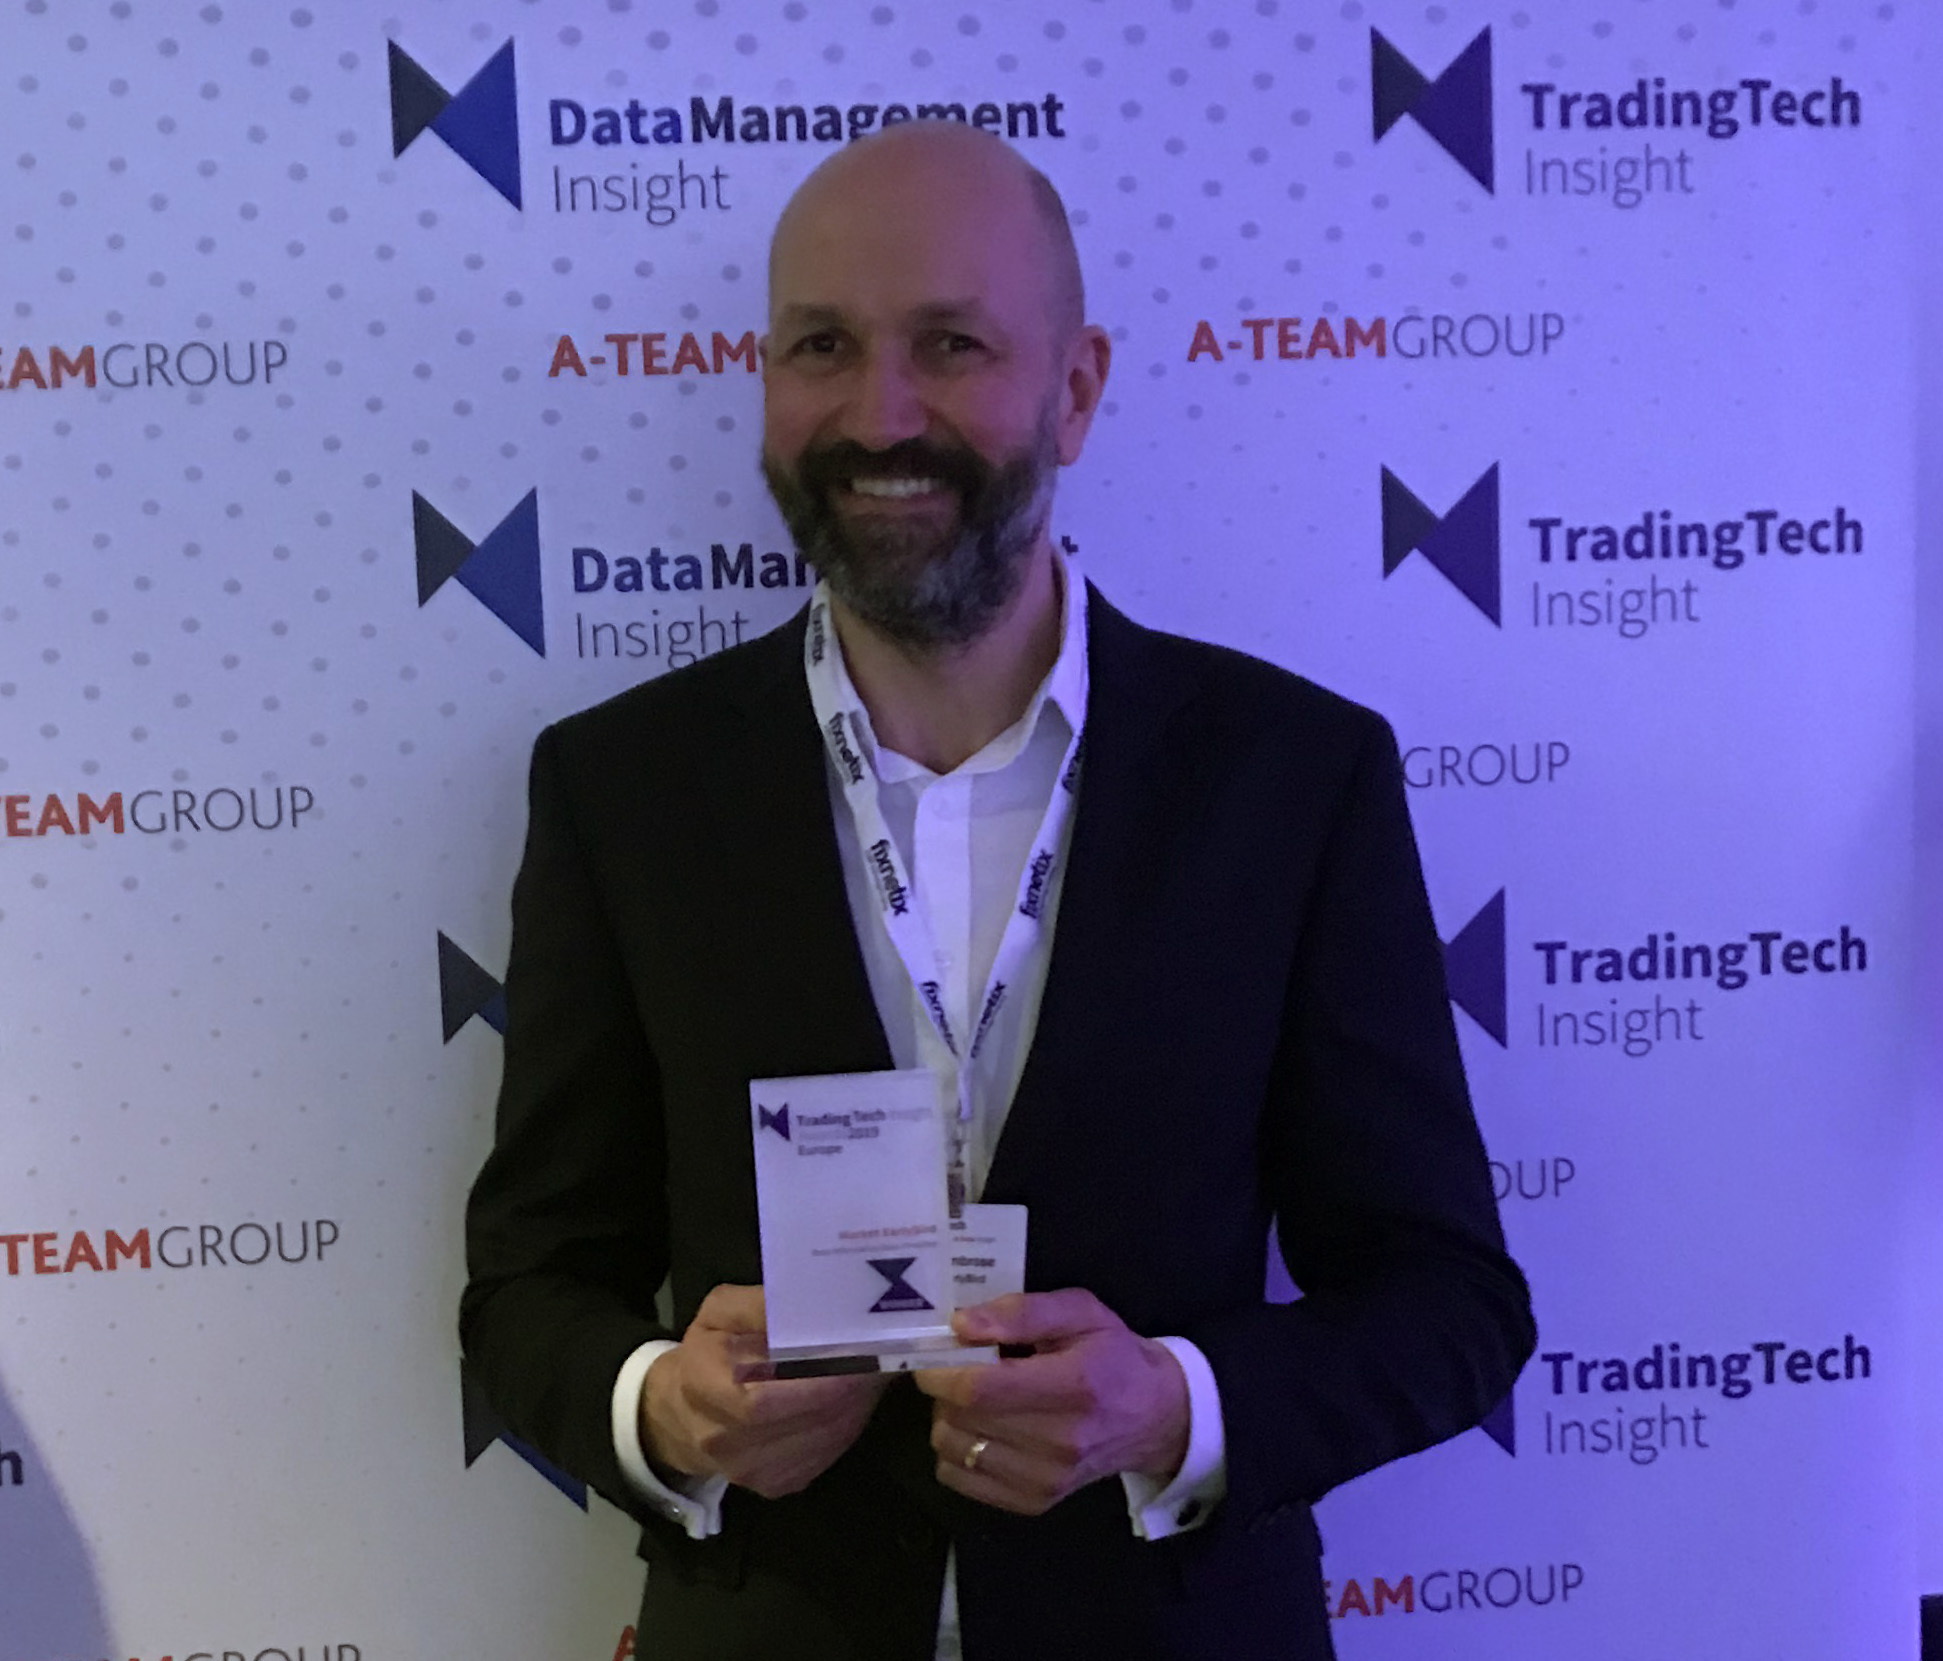 Danny Ambrose holding the TradingTech Insight Europe 2019 Award for Best Data Provider